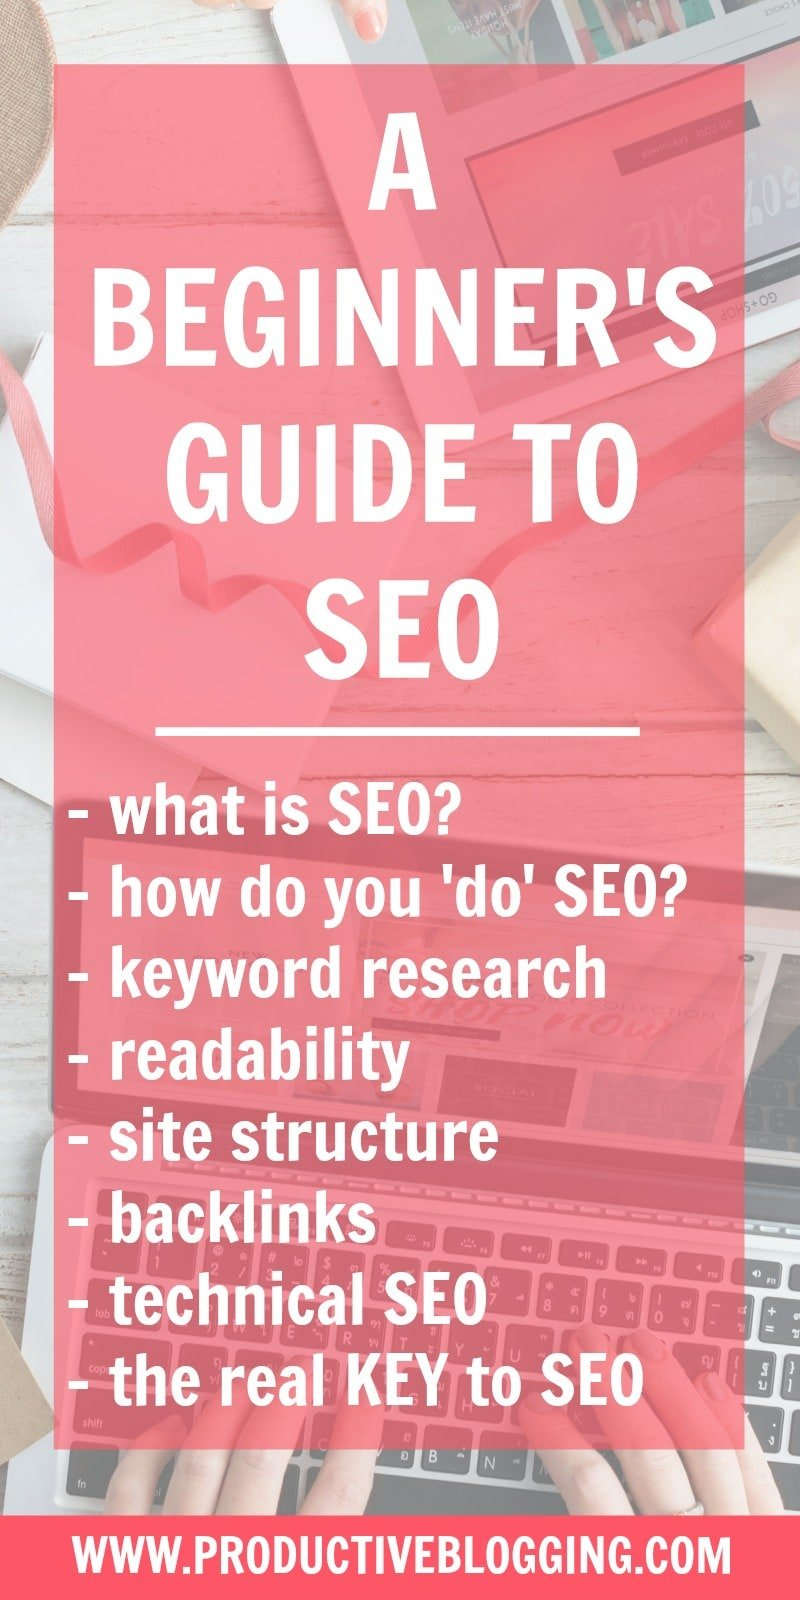 Do you find SEO confusing and complicated? Do you wish you understood more about SEO and how it works? Then you NEED to read my beginner's guide to SEO! #SEO #SEOforbeginners #beginnersSEO #yoast #yoastseo #yoastplugin #searchengineoptimization #keywords #growyourblog #bloggrowth #bloggrowthhacks #SEOtips #bloggingtips #productiveblogging #blogsmarter #blogsmarternotharder #BSNH